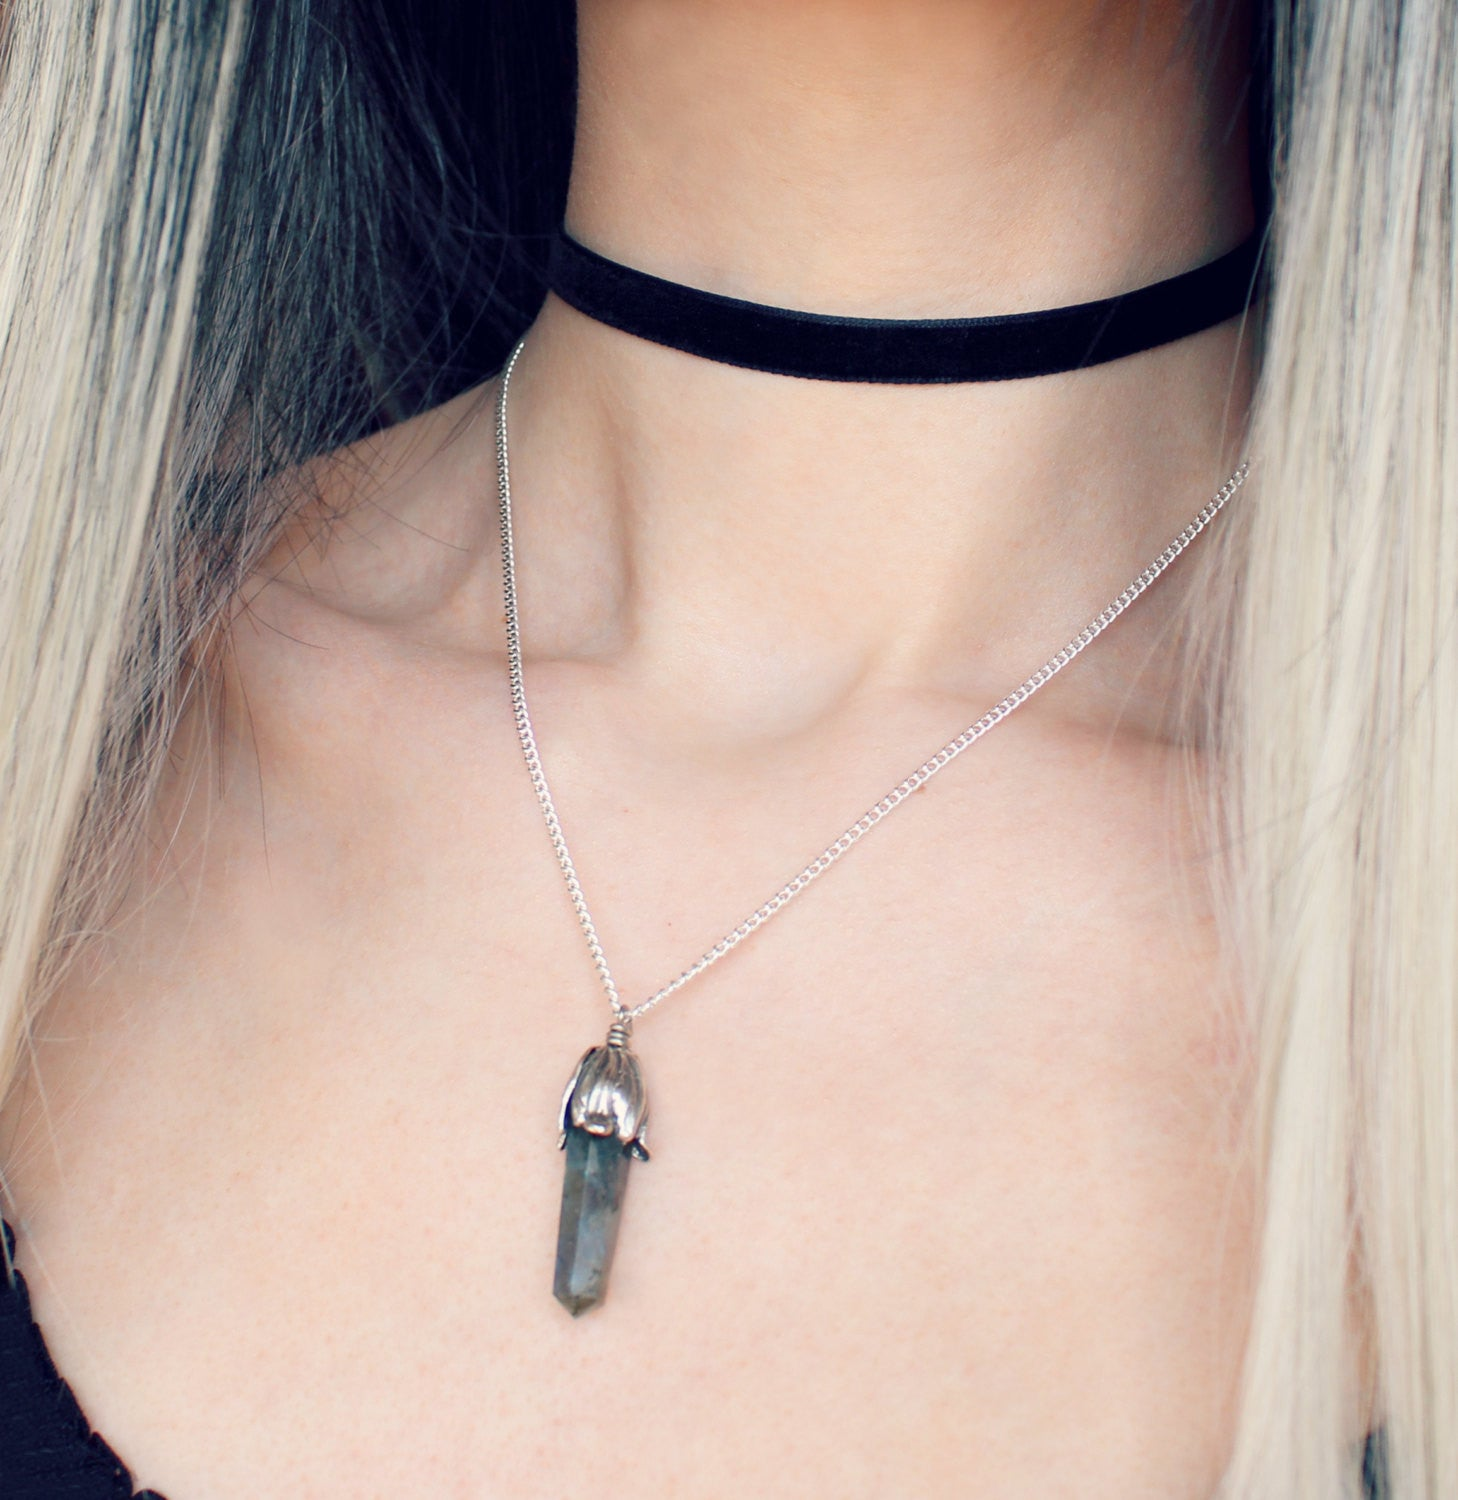 Chokers - What are they?